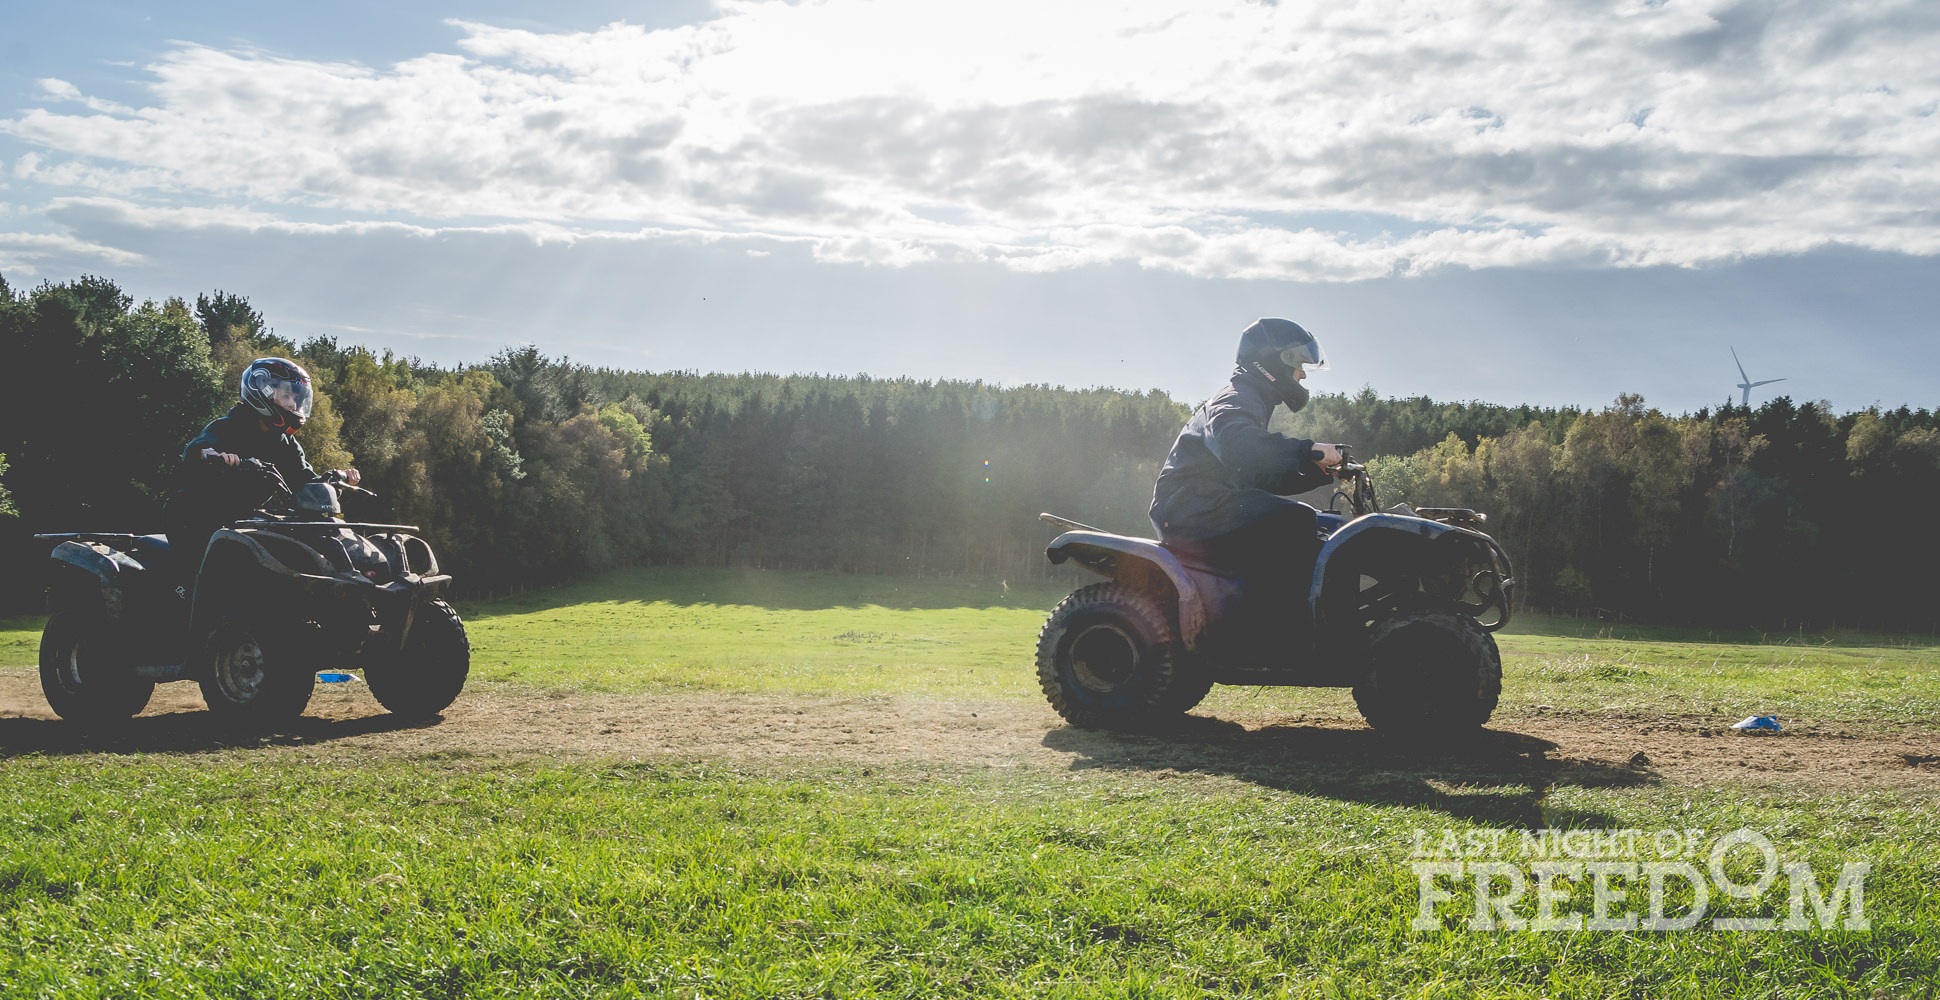 LNOF staff riding quad bikes around a field on a sunny day